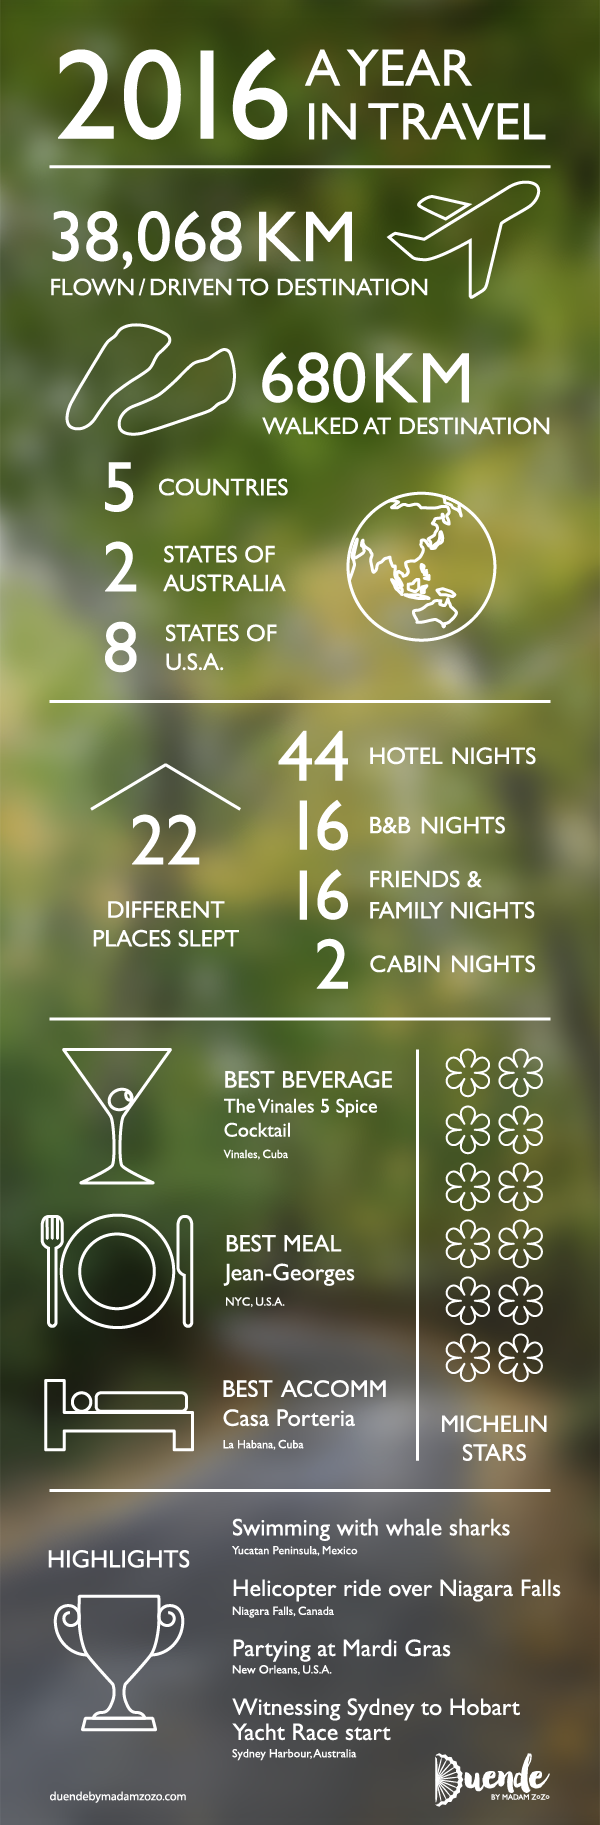 Duende 2016 Year in Travel Infographic